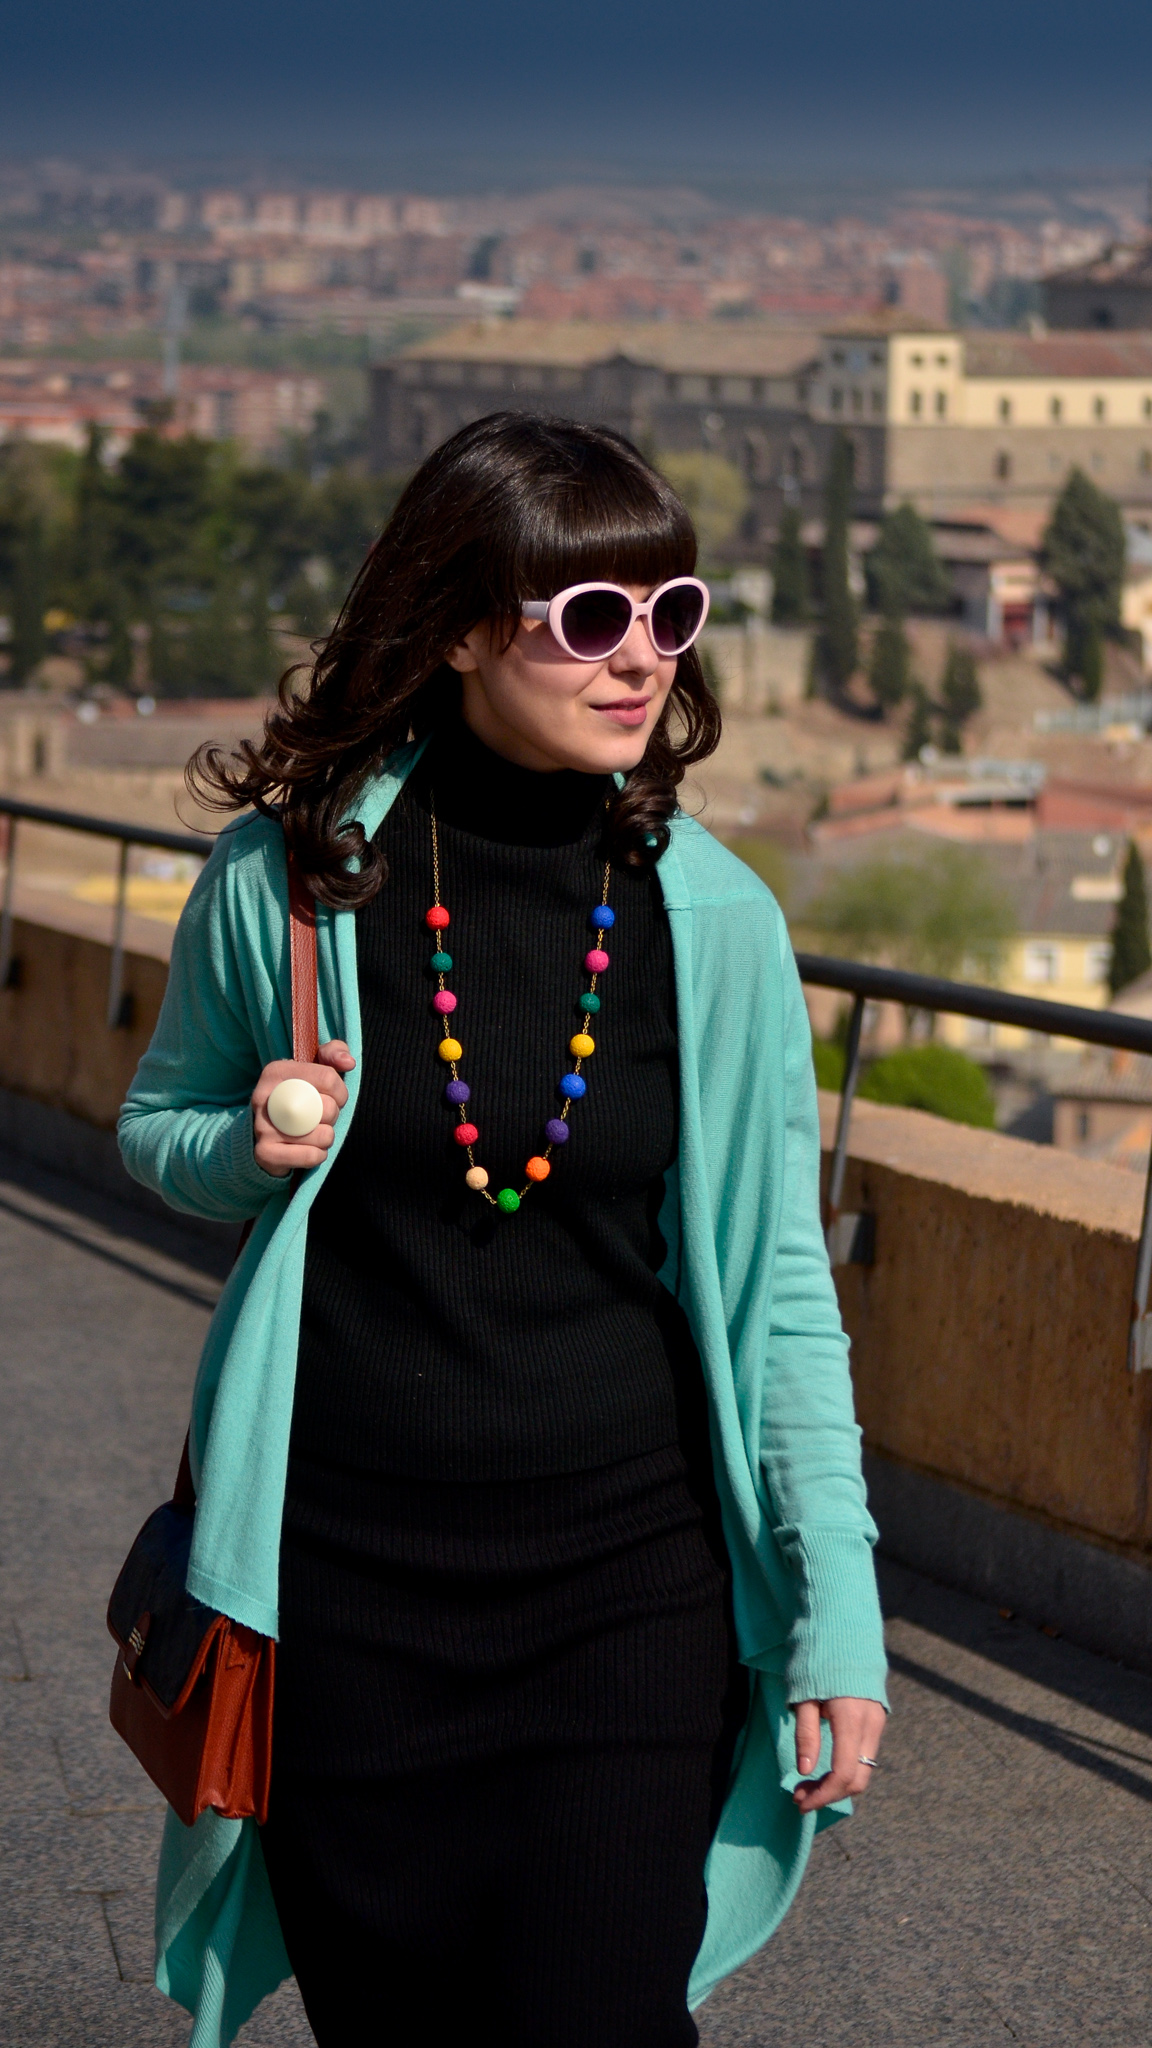 Toledo Spain tourist outfit colourful colours handmade necklace minty sneakers minty oversized cardigan thrifted bag satchel pink sunglasses amazing landscapes sceneries Alcazar view